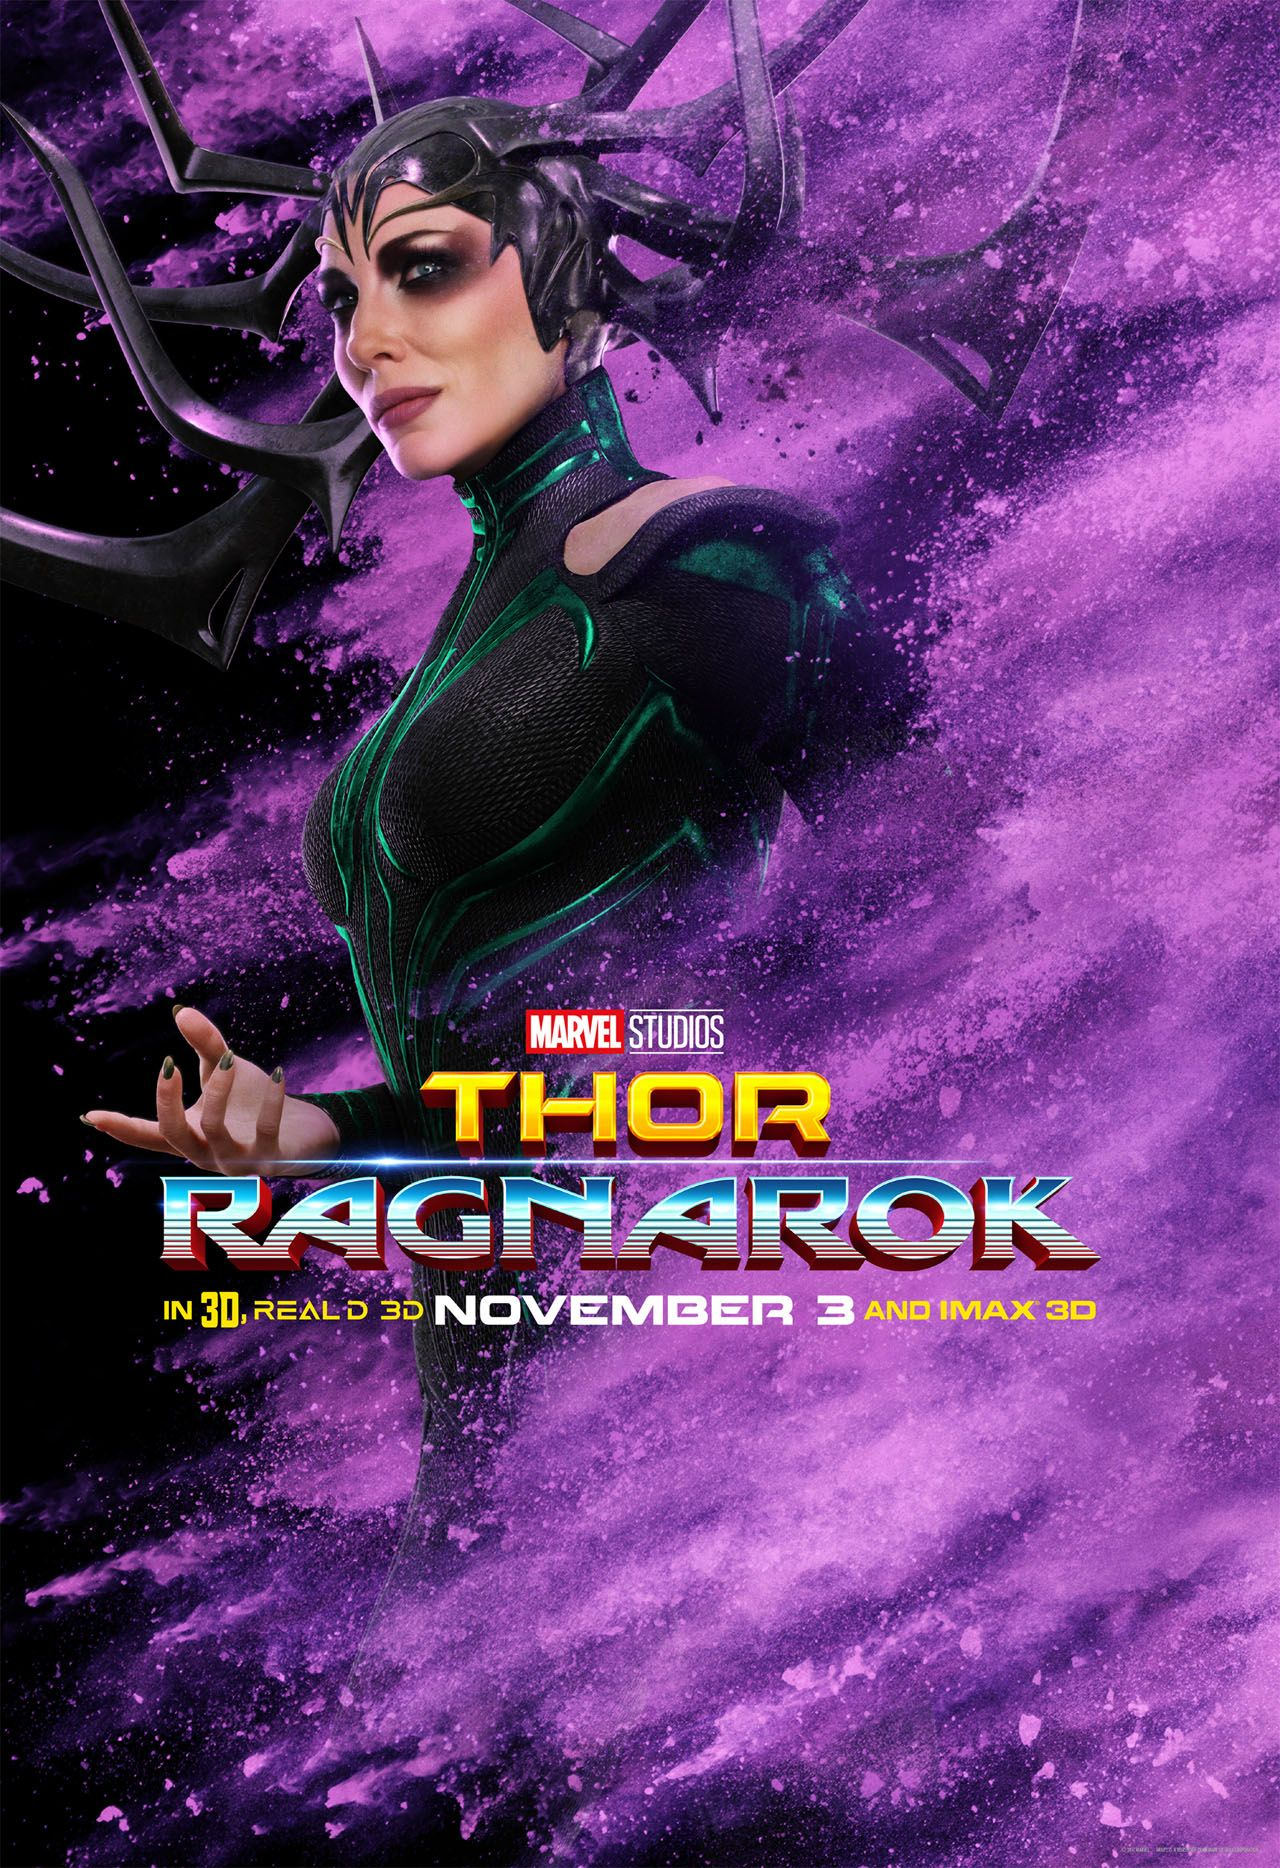 Thor Ragnarok Abunch Of Colorful Character Posters Have Hit The Web Head Over To The Link See The Rest Co Ragnarok Movie Ragnarok Characters Marvel Thor